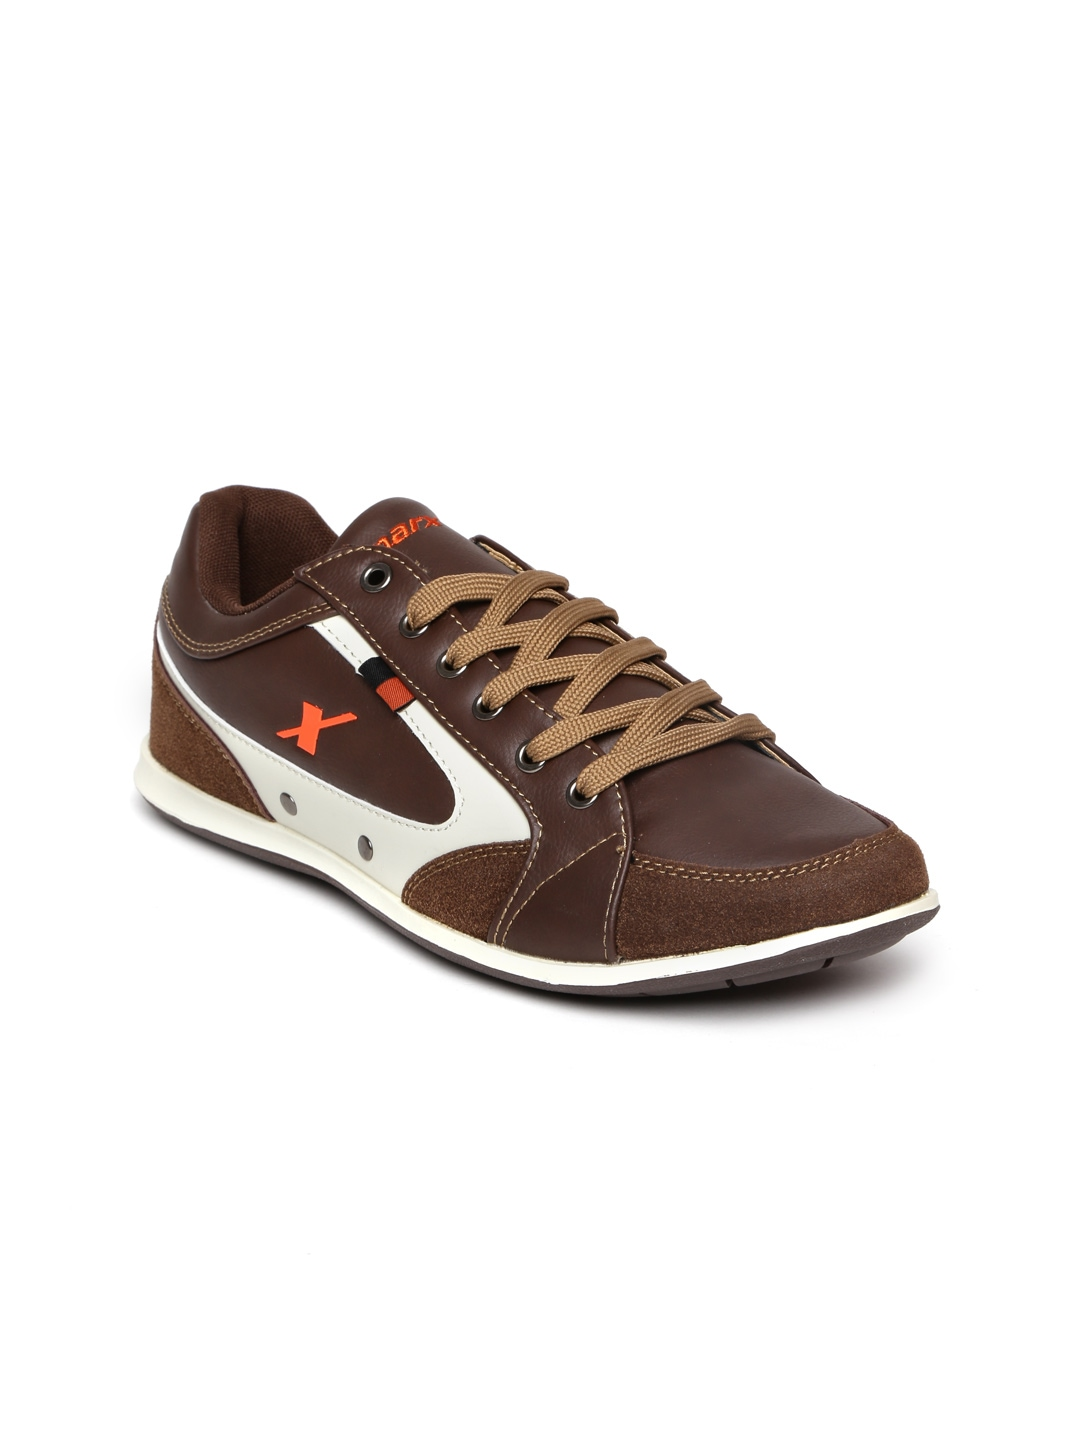 Myntra Sparx Men Brown Casual Shoes 636698 | Buy Myntra ...